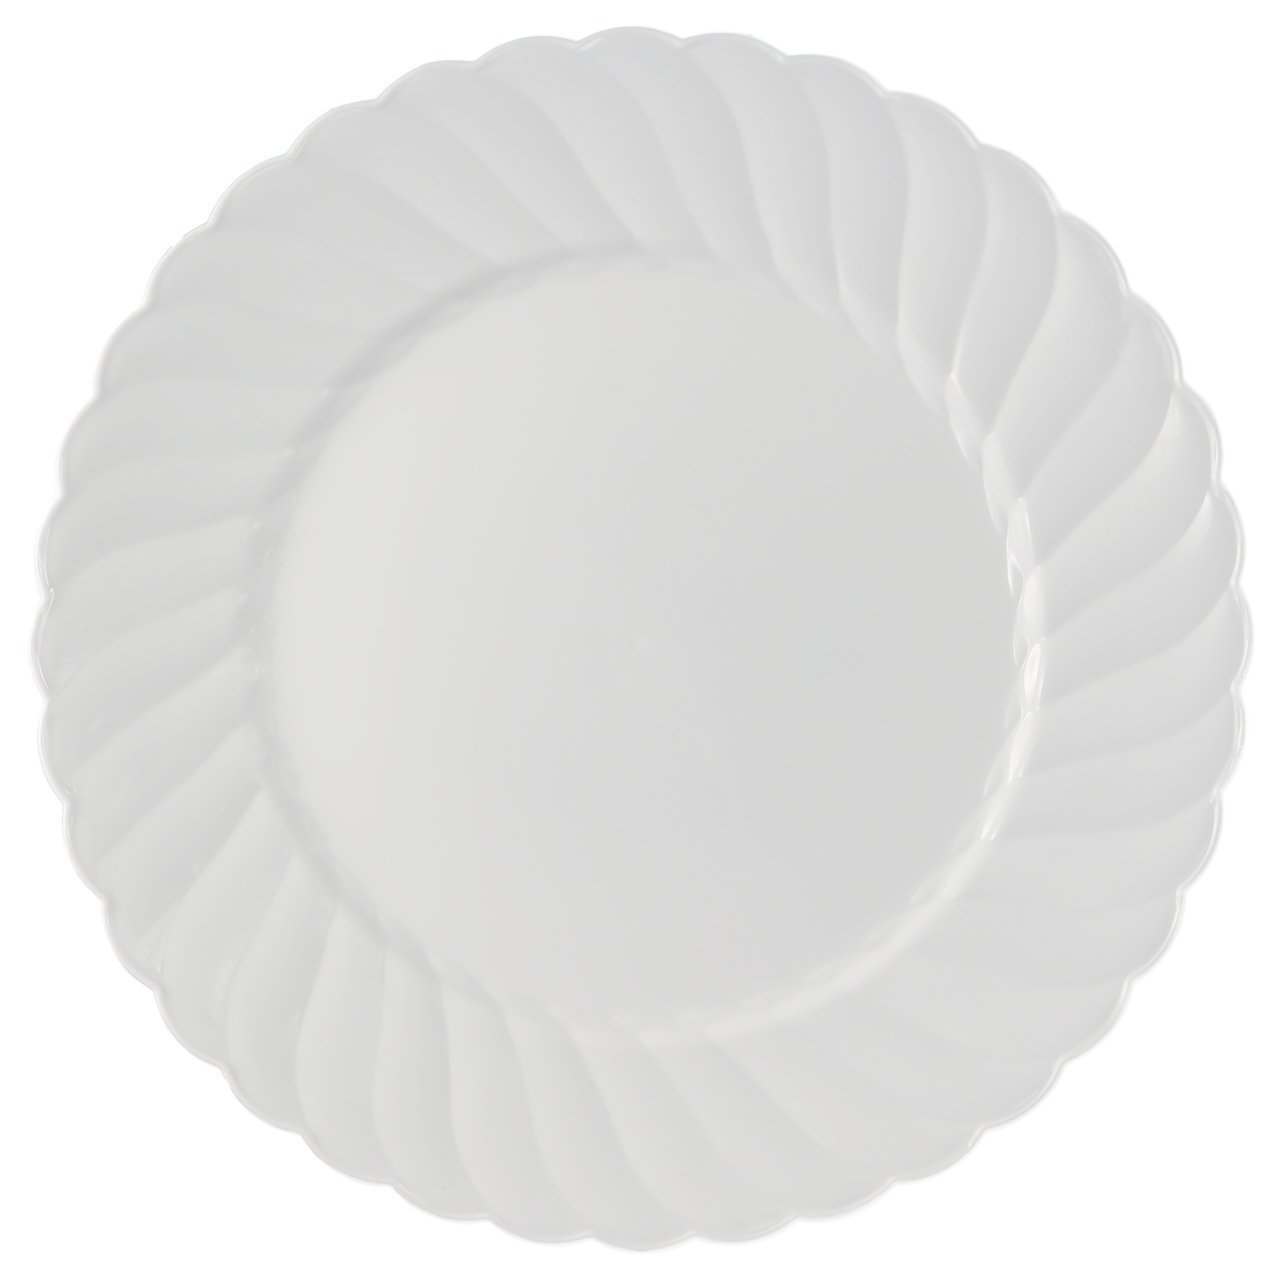 Kaya Collection - Disposable White Plastic Round 10.25'' Dinner Plates - 2 Pack (36 Plates)